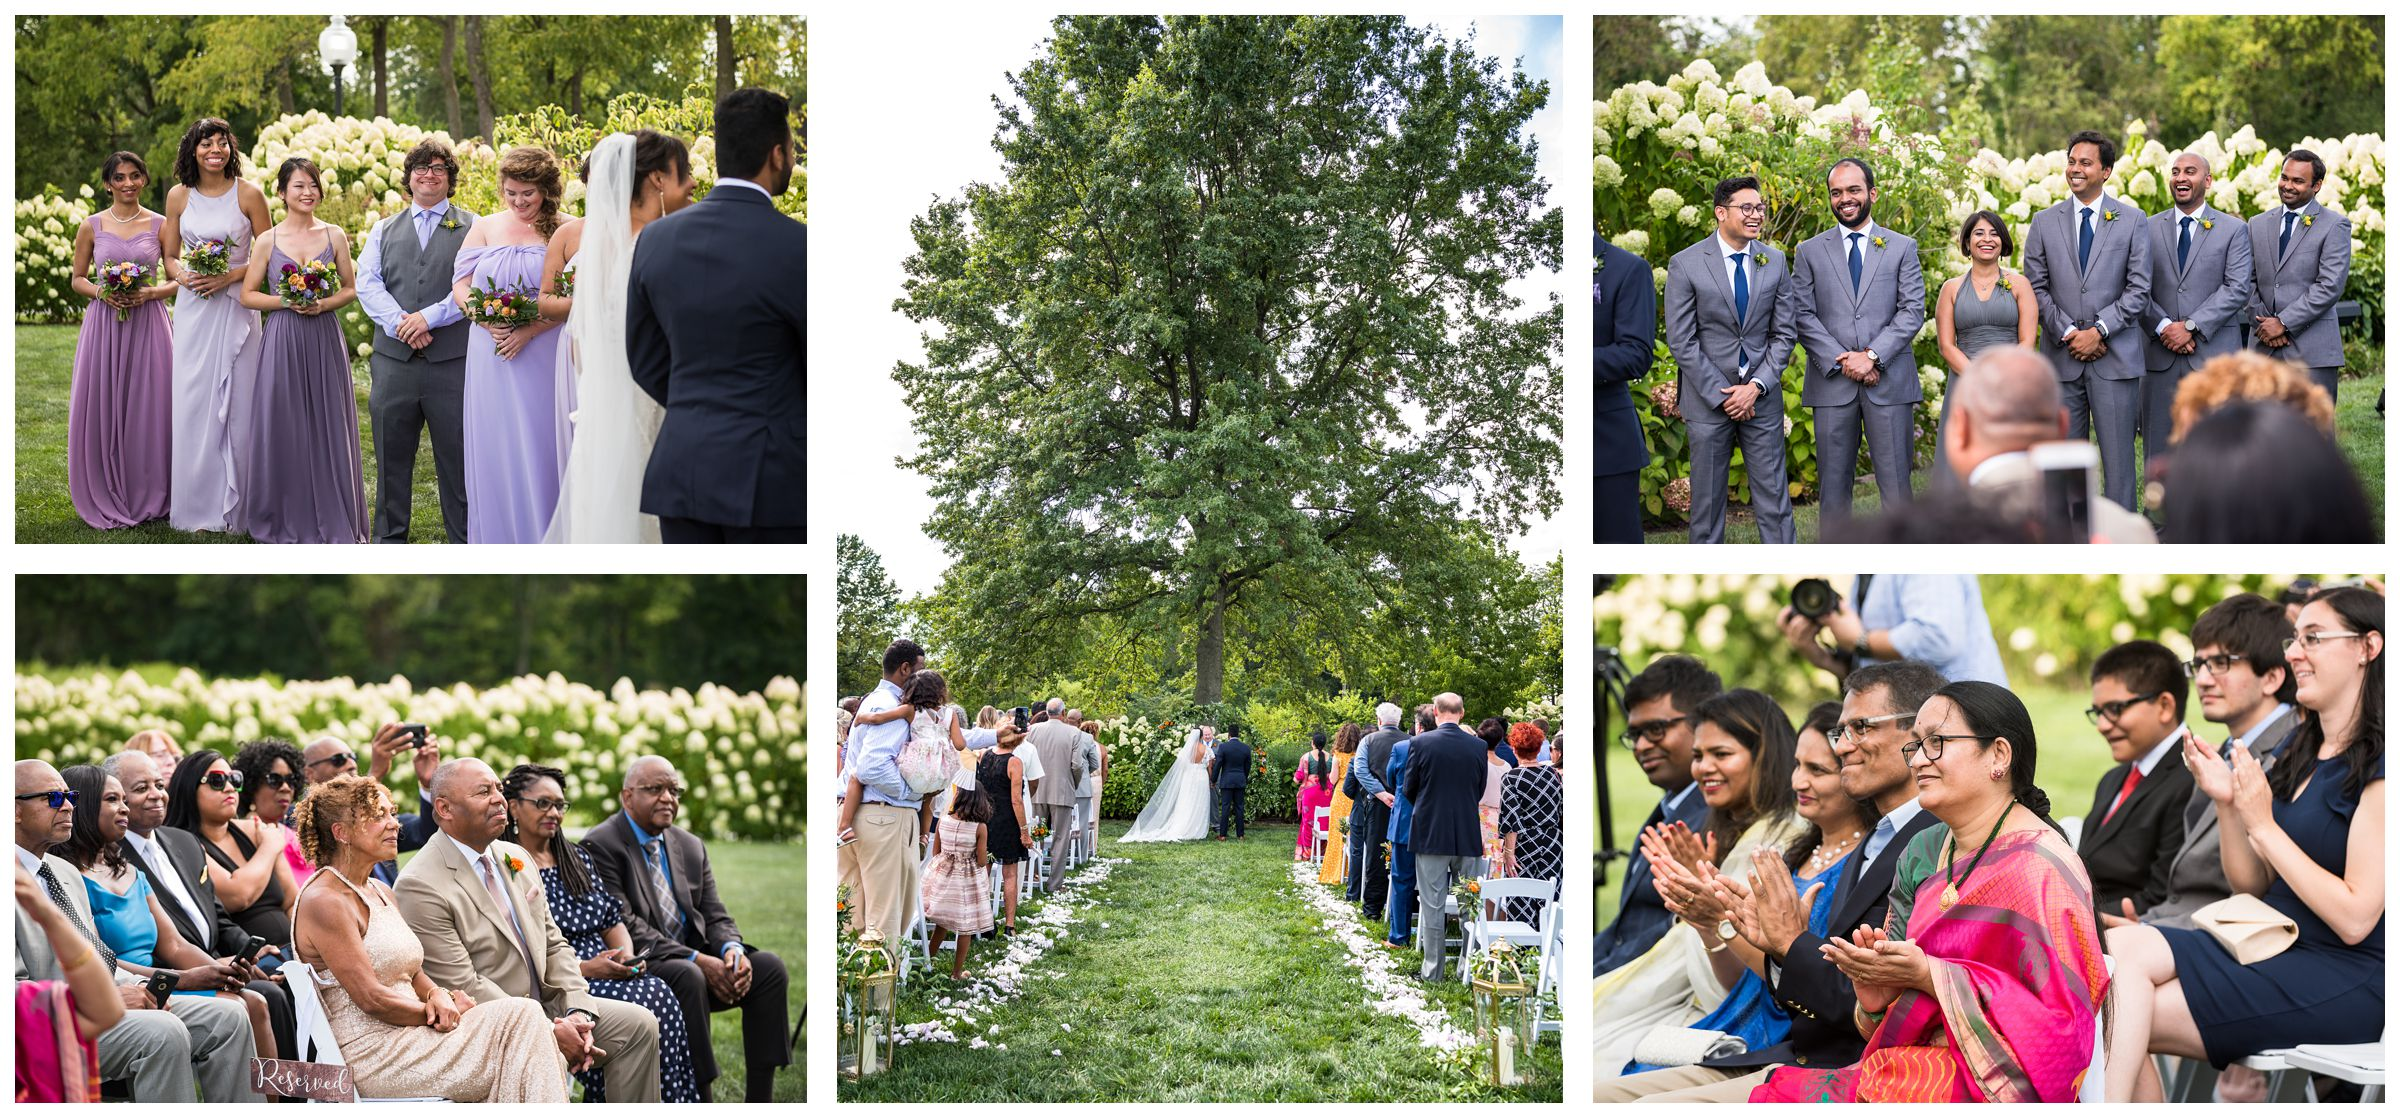 diverse wedding party and family members watch wedding ceremony with Indian and African American influences at Jorgensen Farms in Columbus